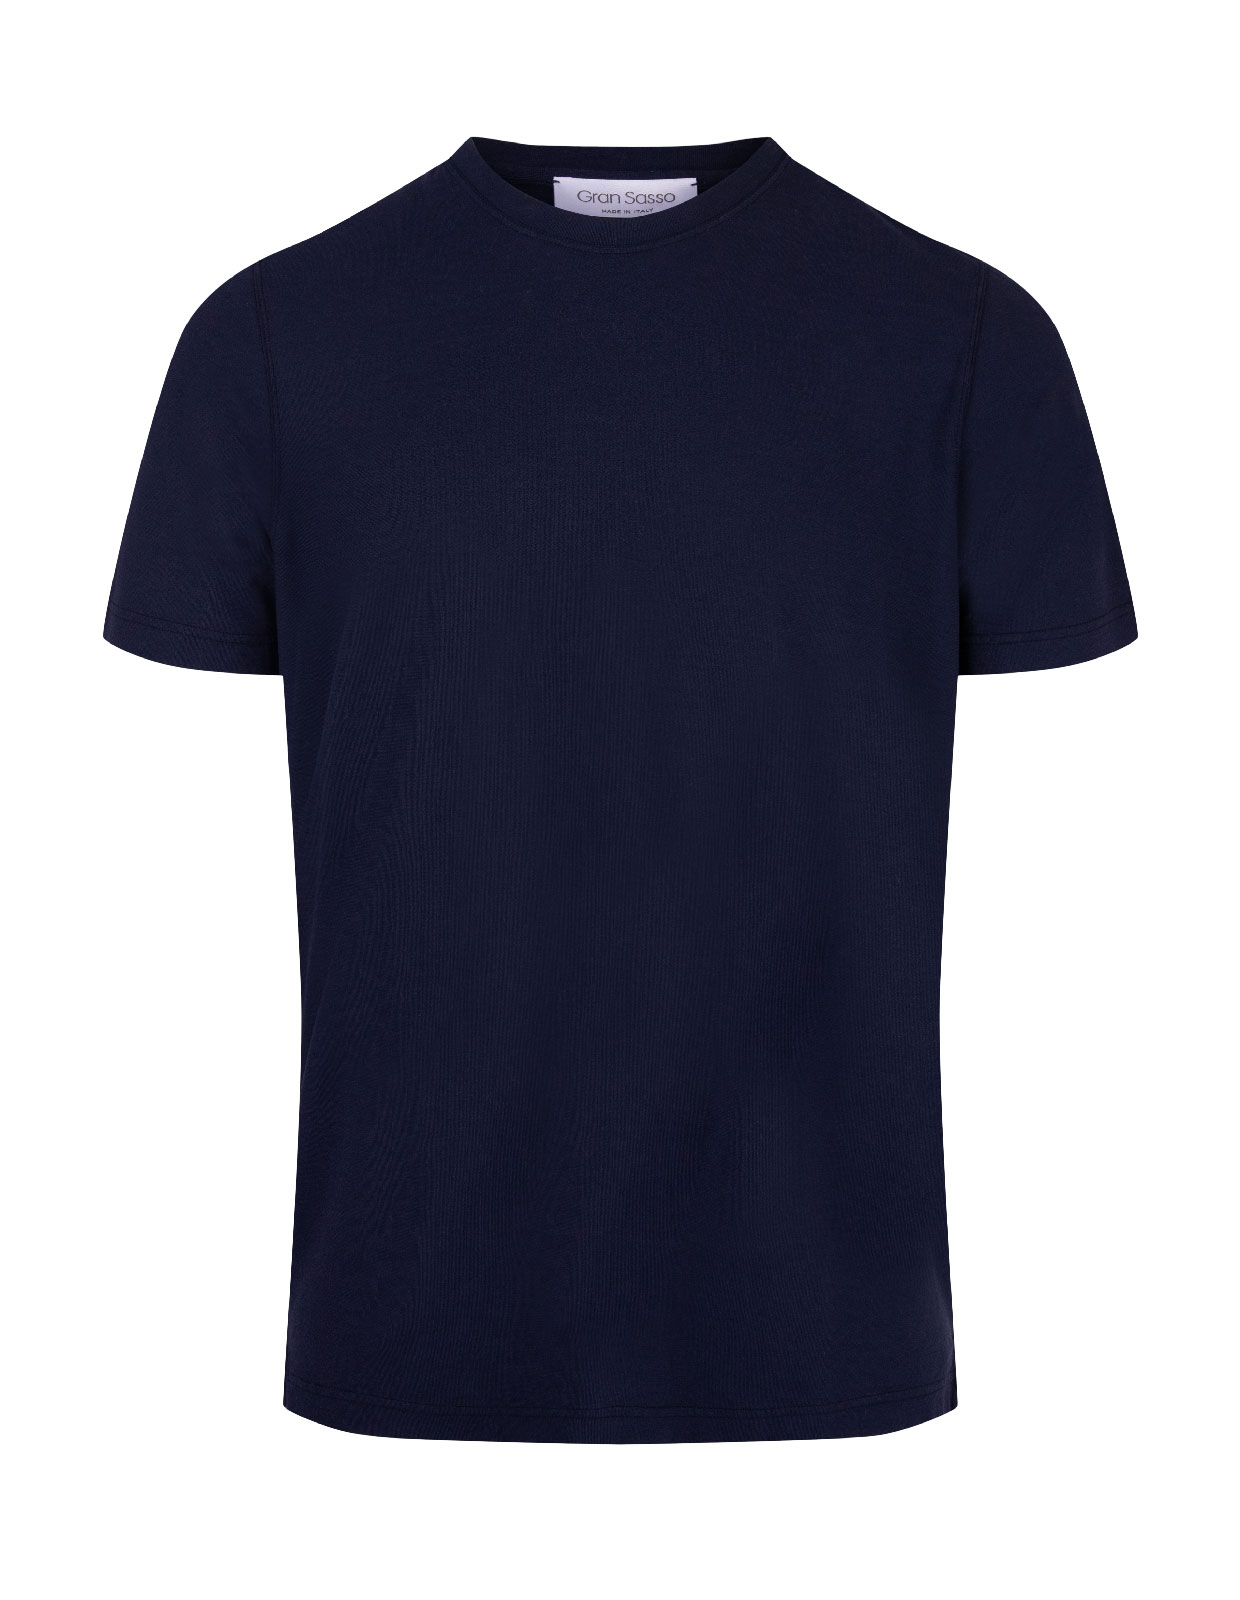 T-shirt Cotton Crew Neck Navy